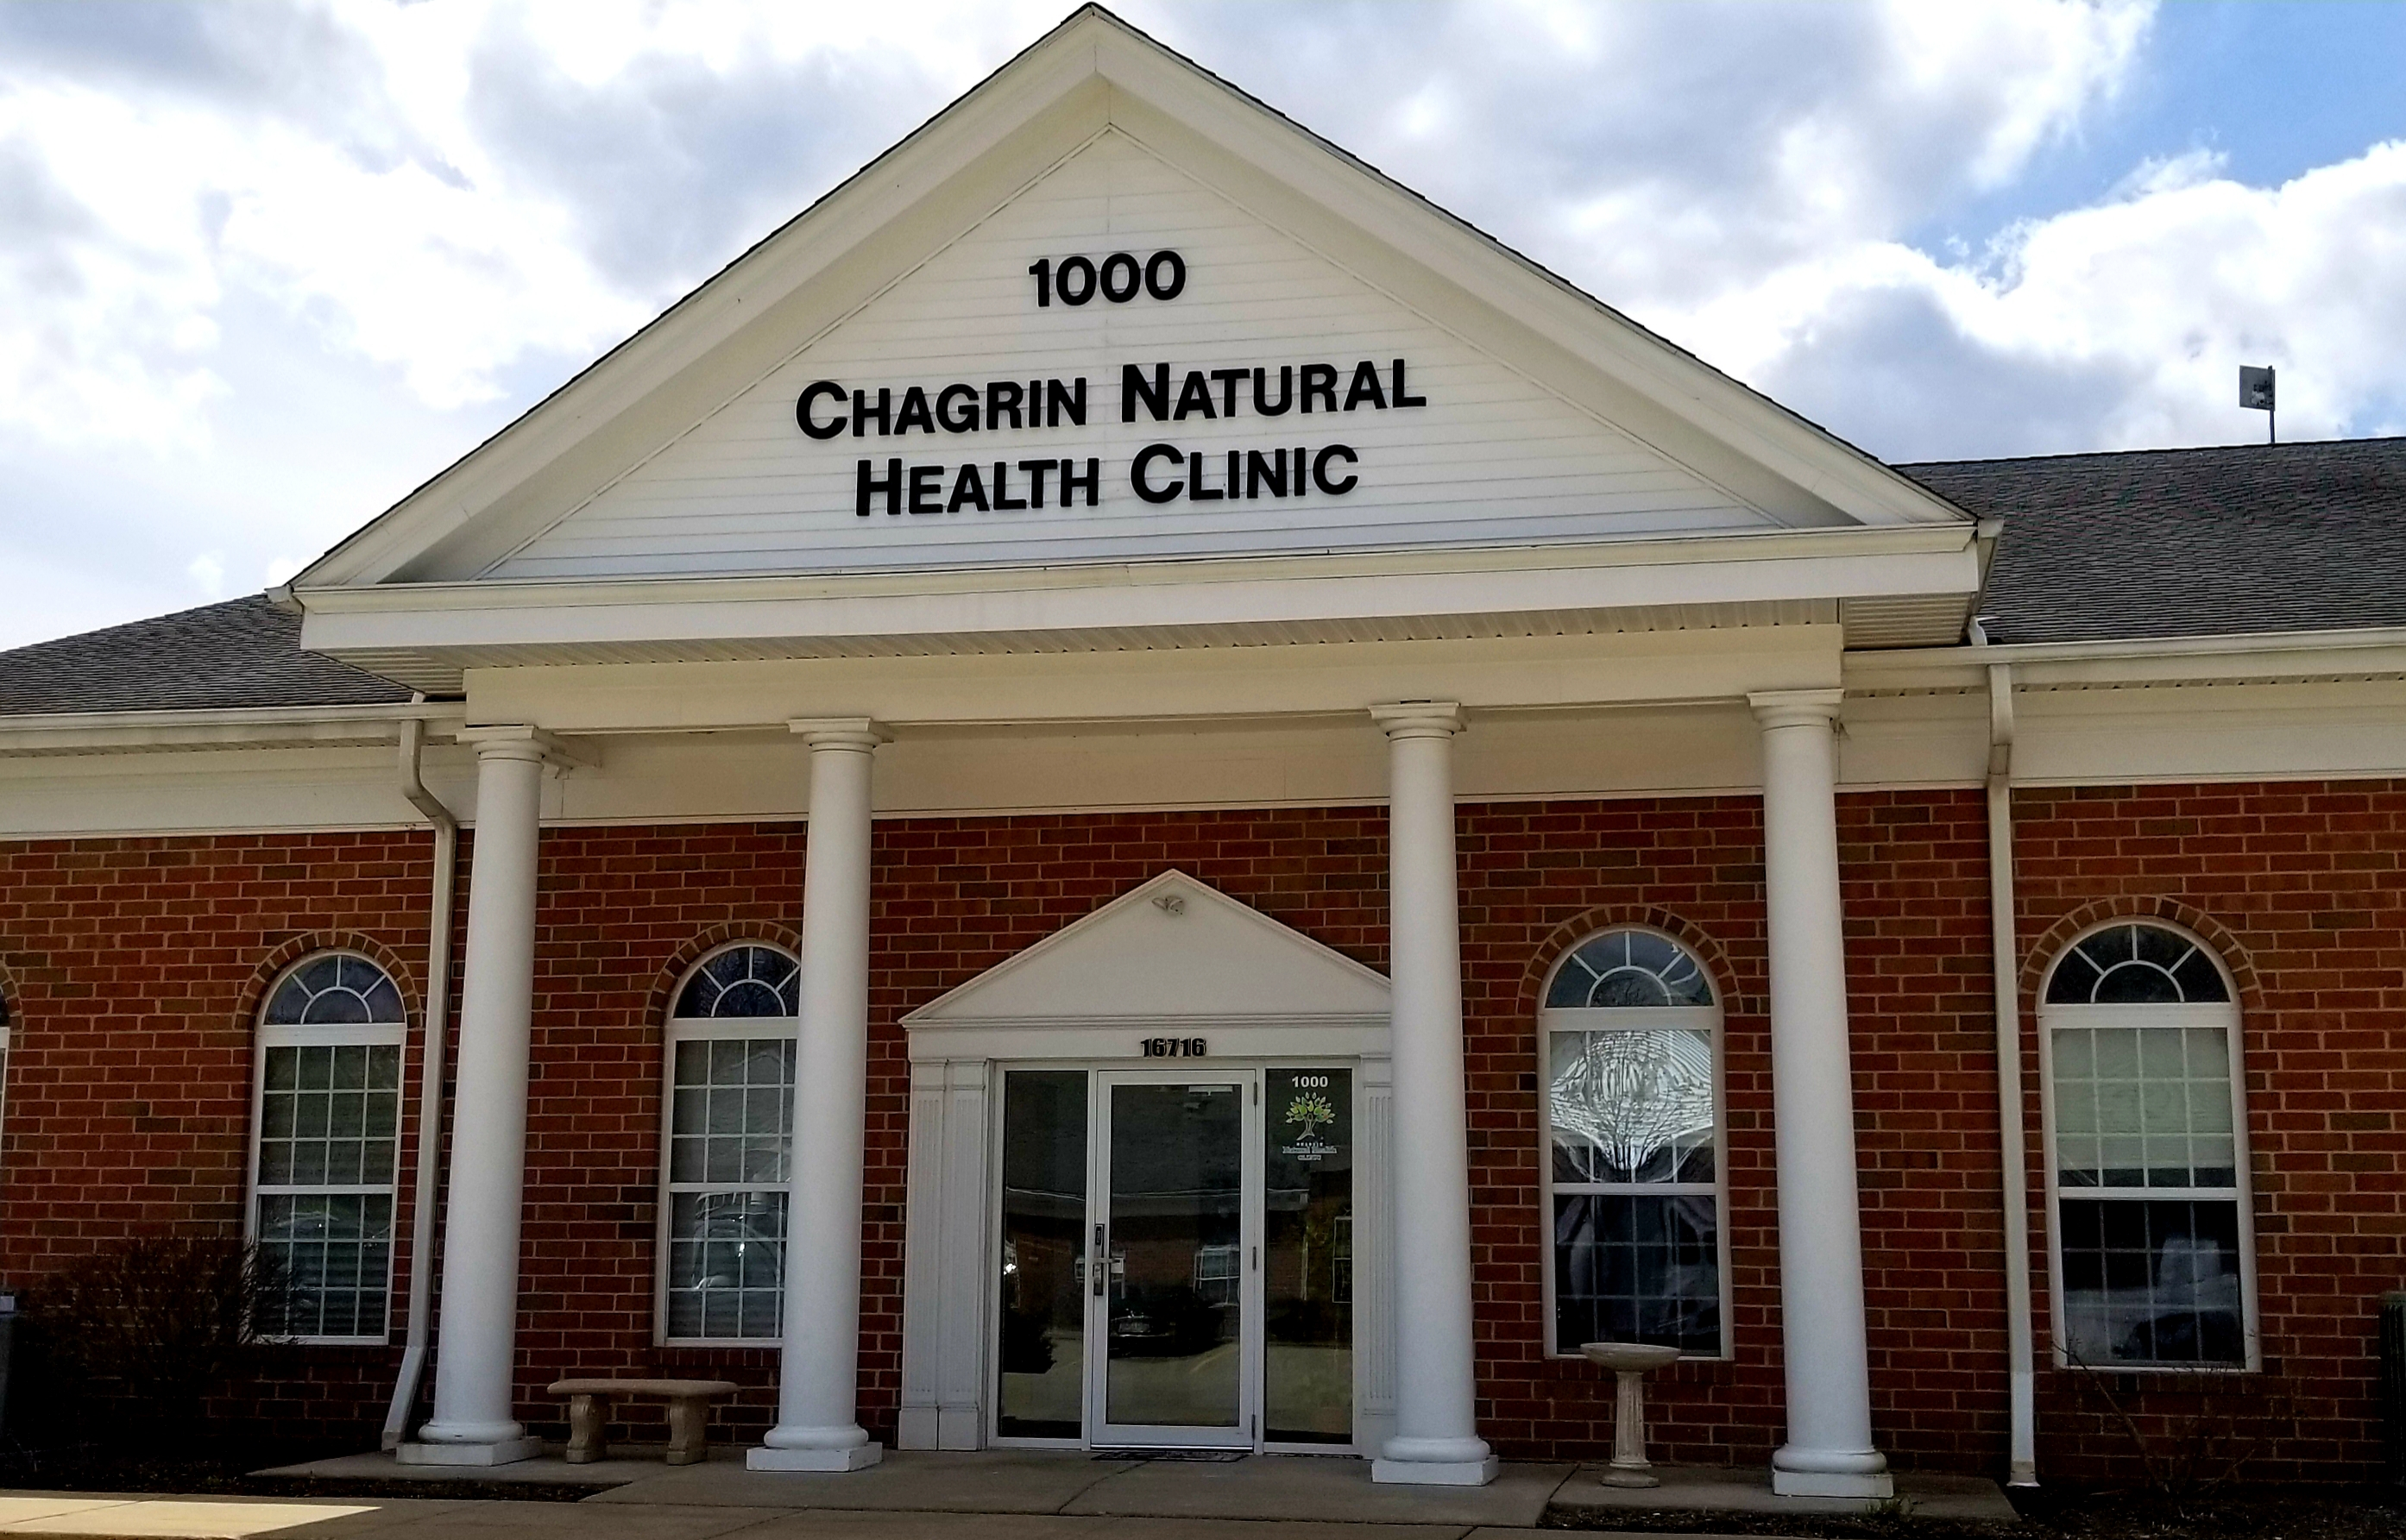 About | Chagrin Natural Health Clinic